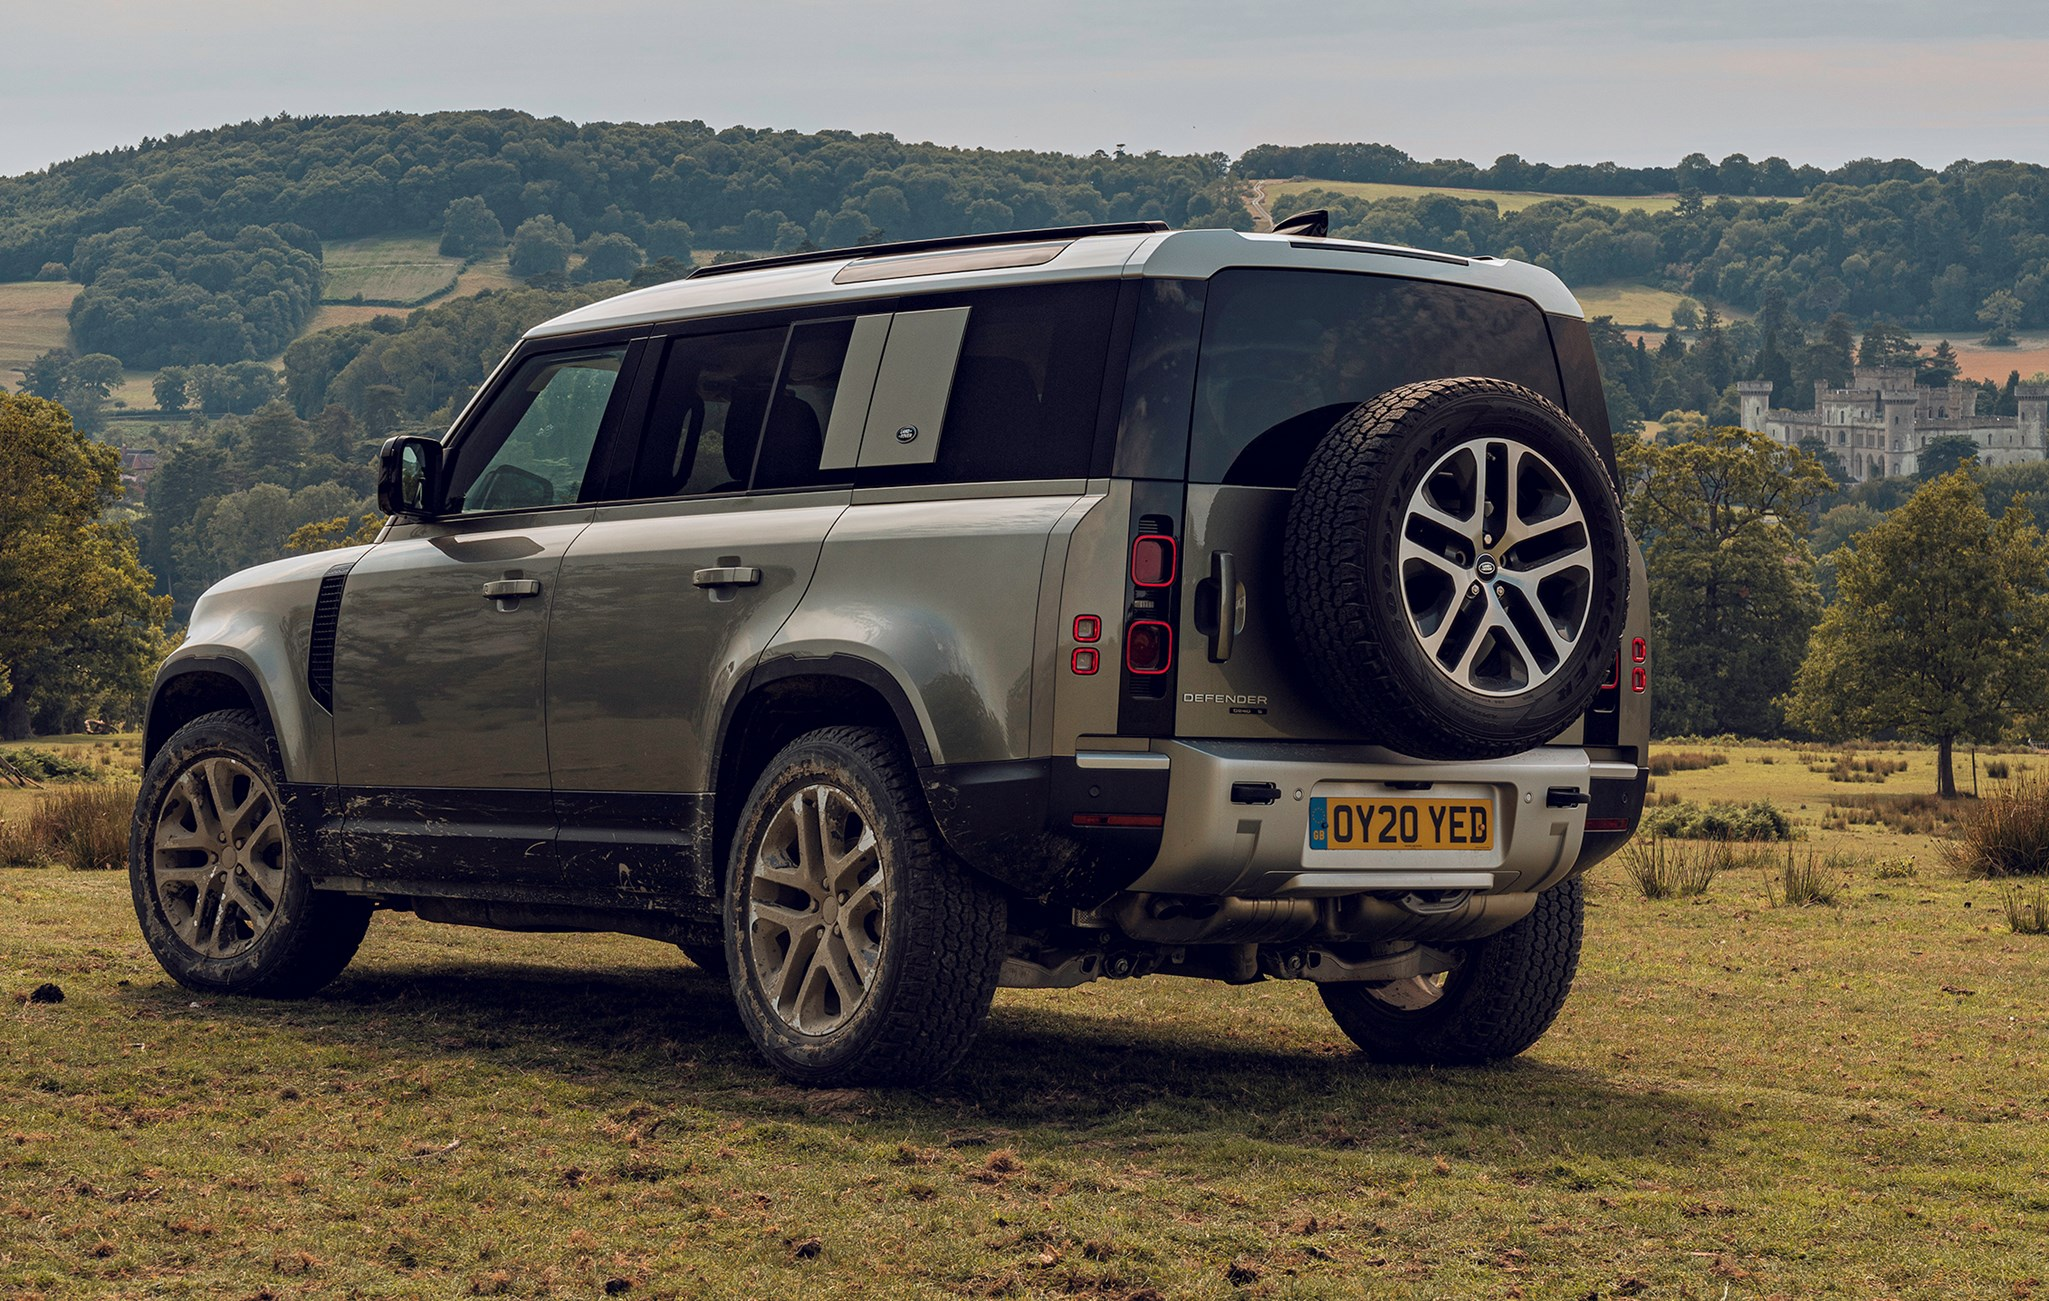 Land Rover Defender (2020) rear view